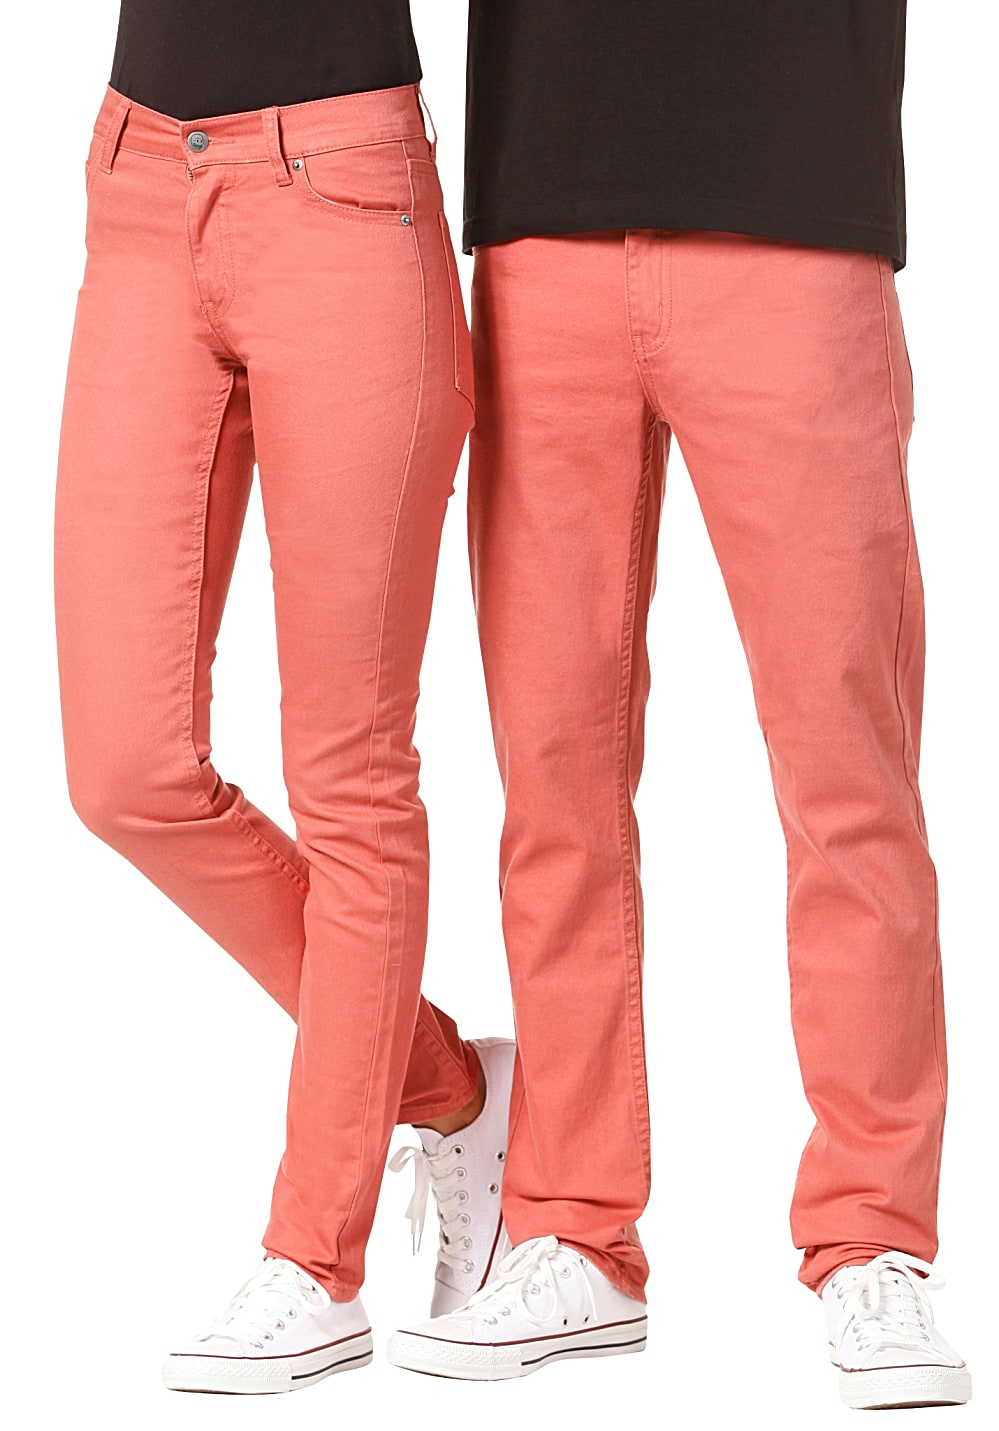 Cheap Monday Tight Jeans - Rot Sale Angebote Guhrow